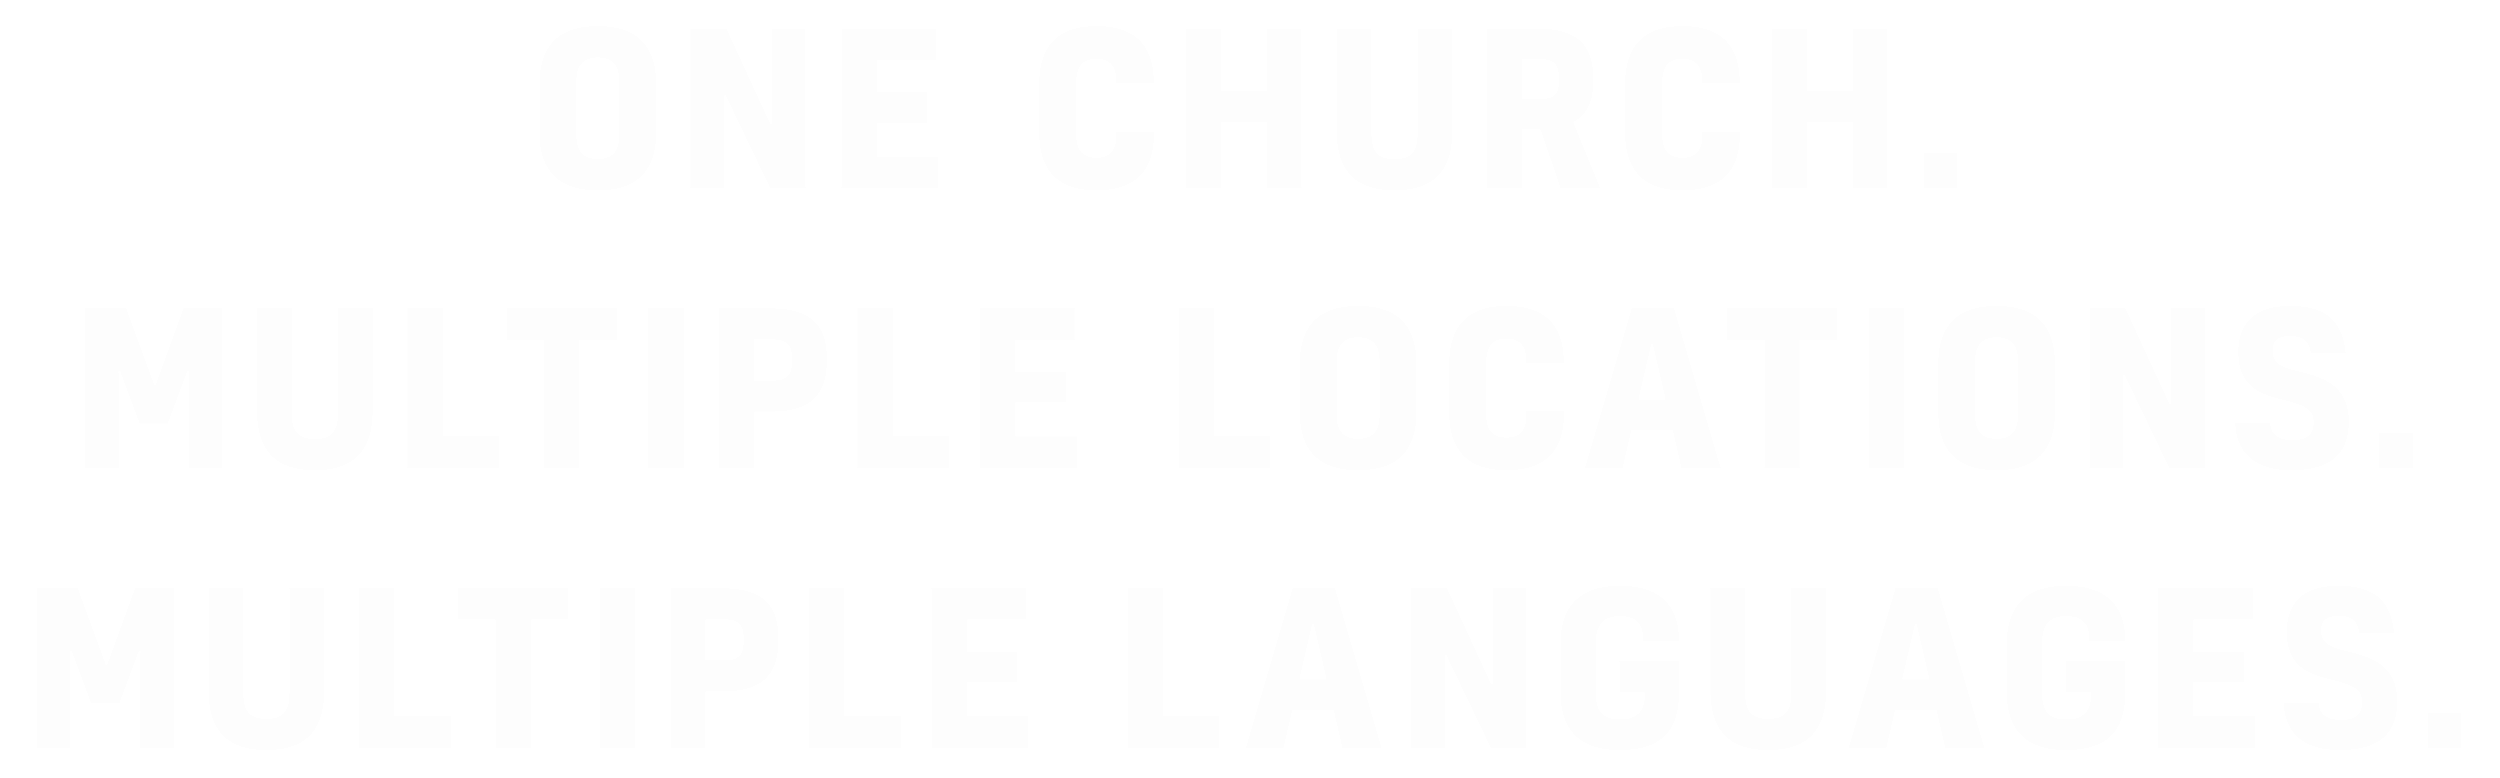 We are One Church with Multiple Locations and Multiple Languages.